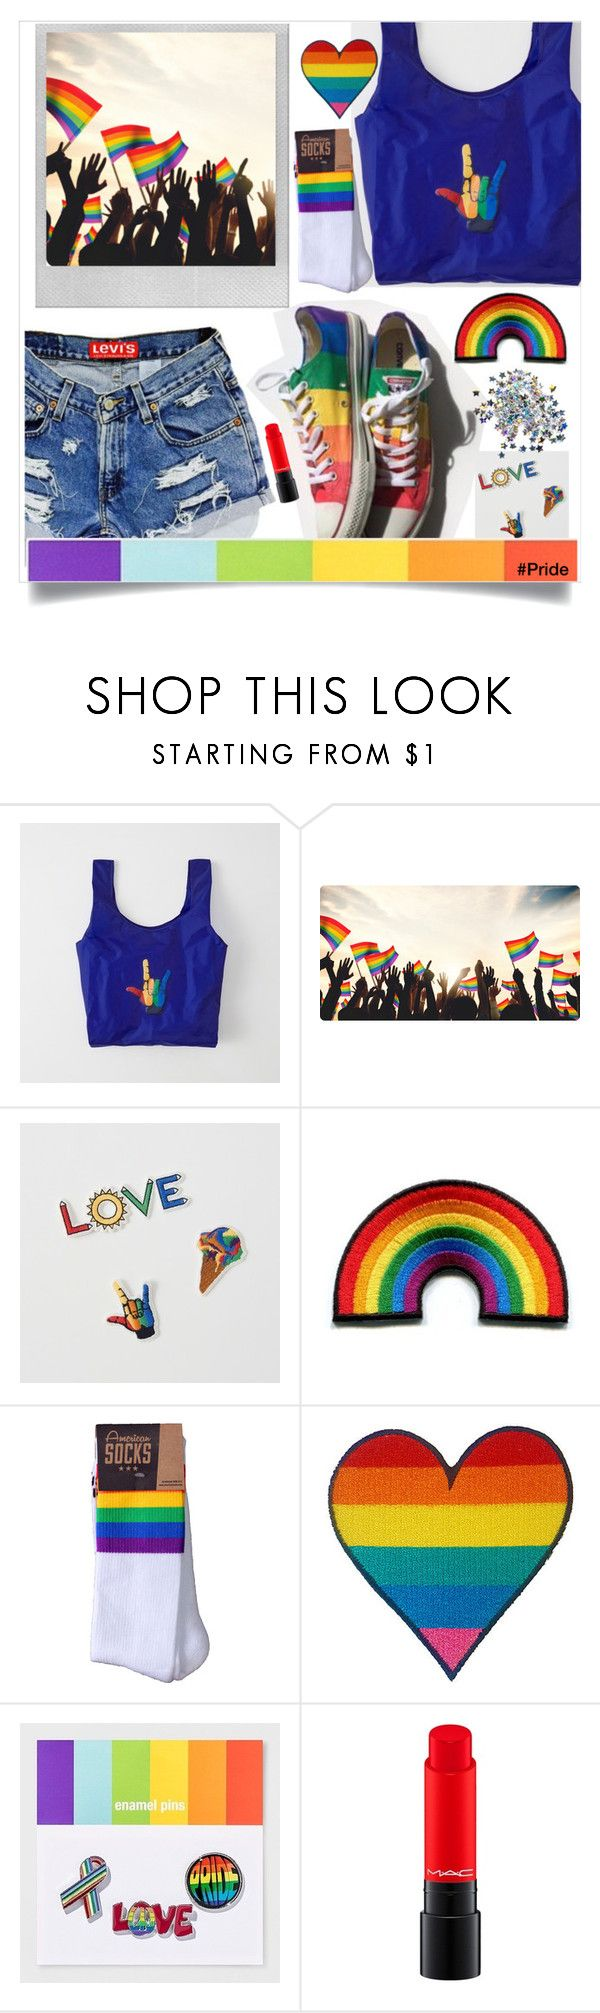 T shirt design jonesboro ar -  Pride By Ambacasa Liked On Polyvore Featuring Polaroid Abercrombie Fitch